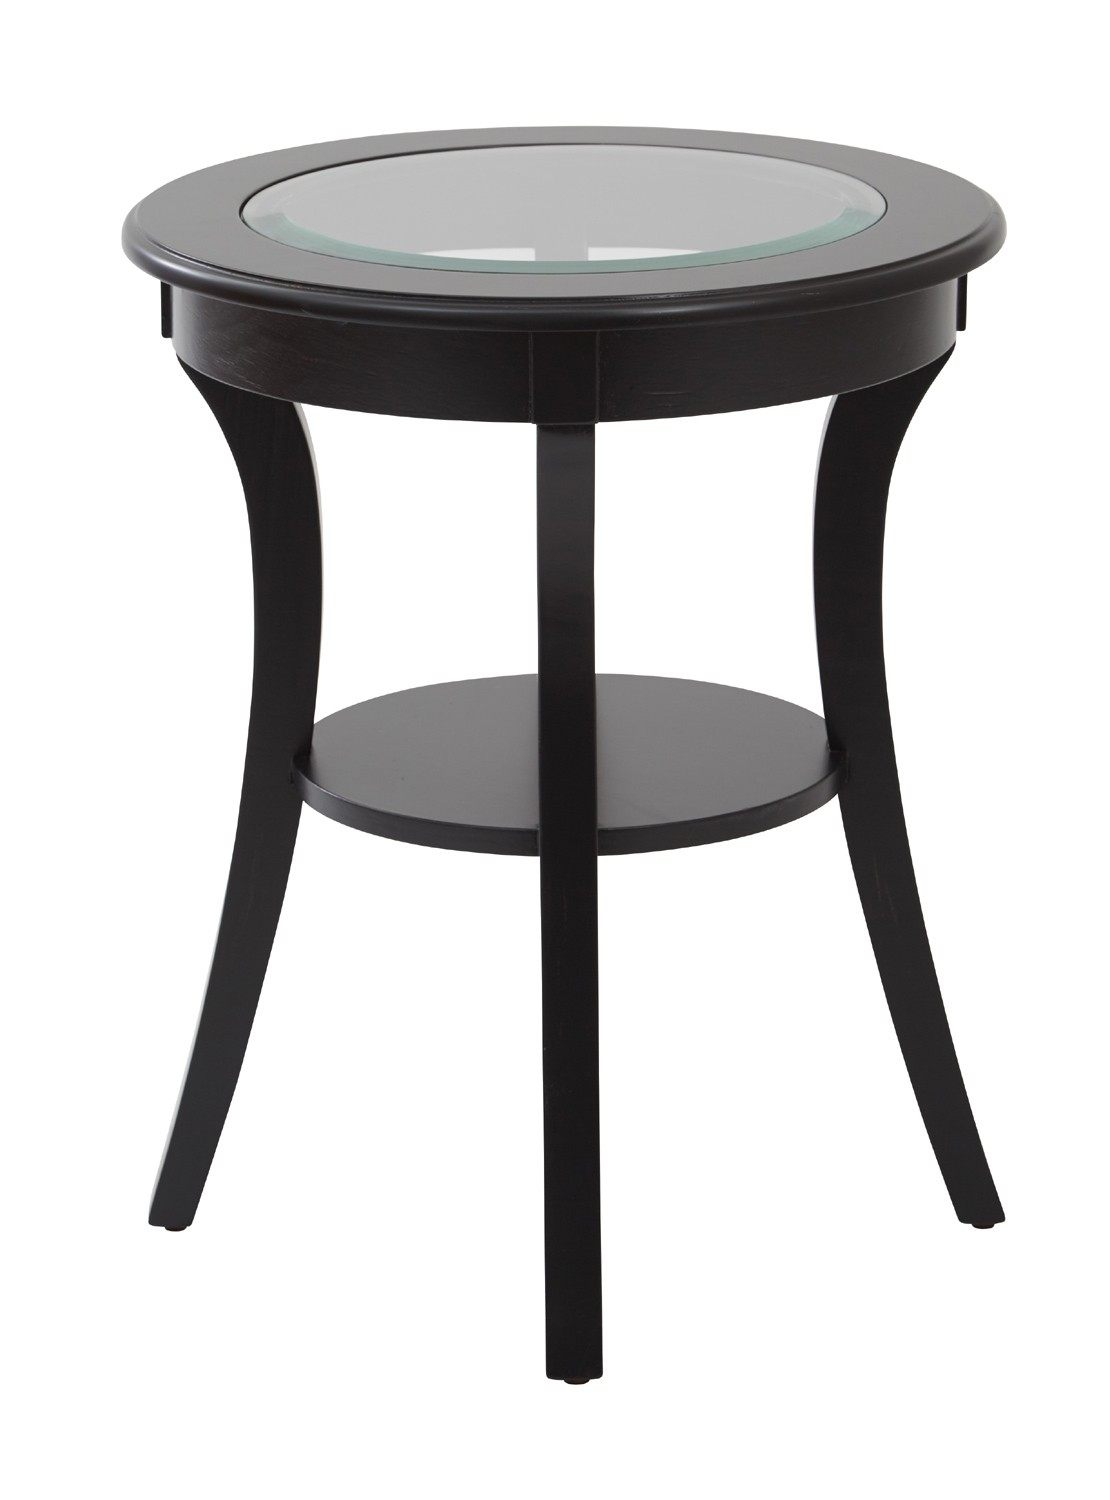 design black round accent table with end square stylish office star harper glass top brushed tures gallery crackled inset unique coffee tables pedestal bedside drawer tiffany